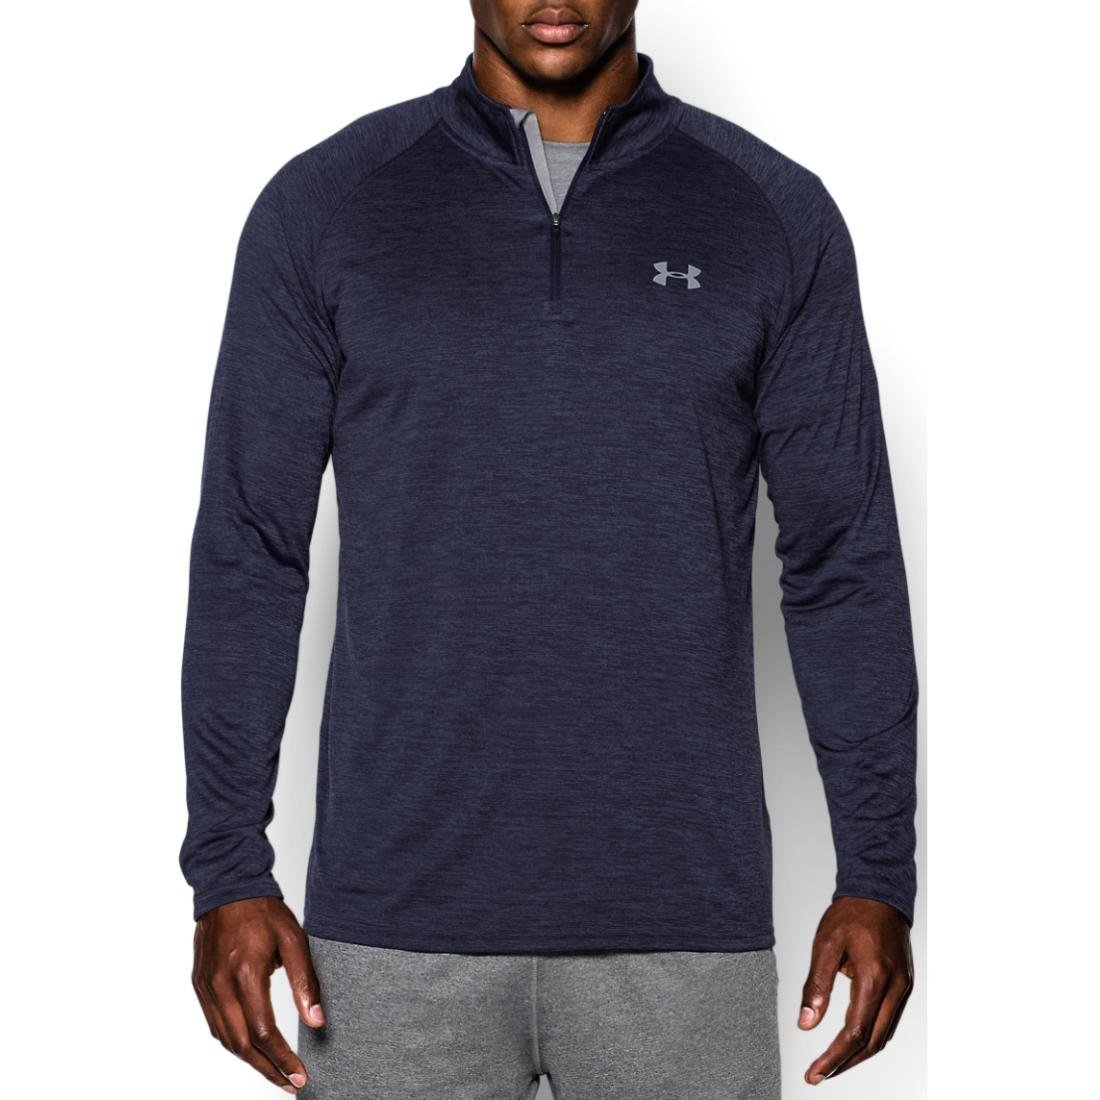 Under Armour - 1242220-414-NVY-M